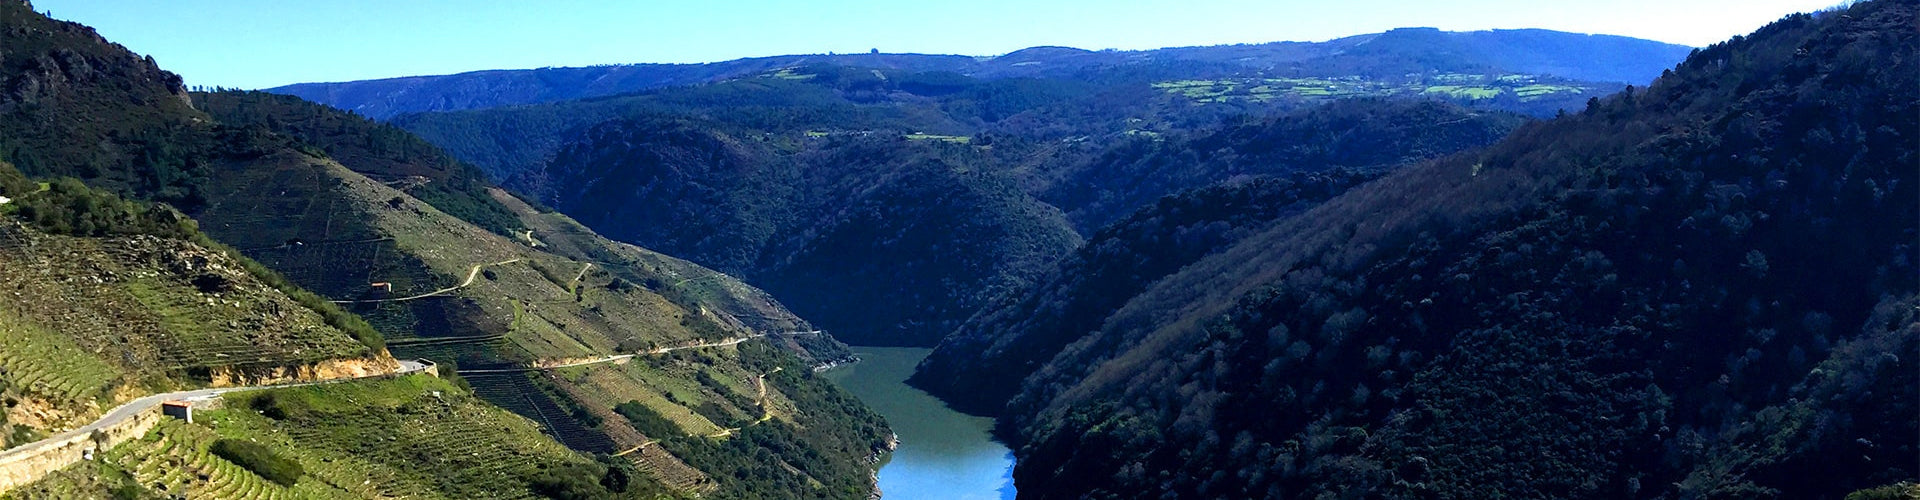 A view of vineyards in the Ribeira Sacra in Spain's Galicia Wine Region